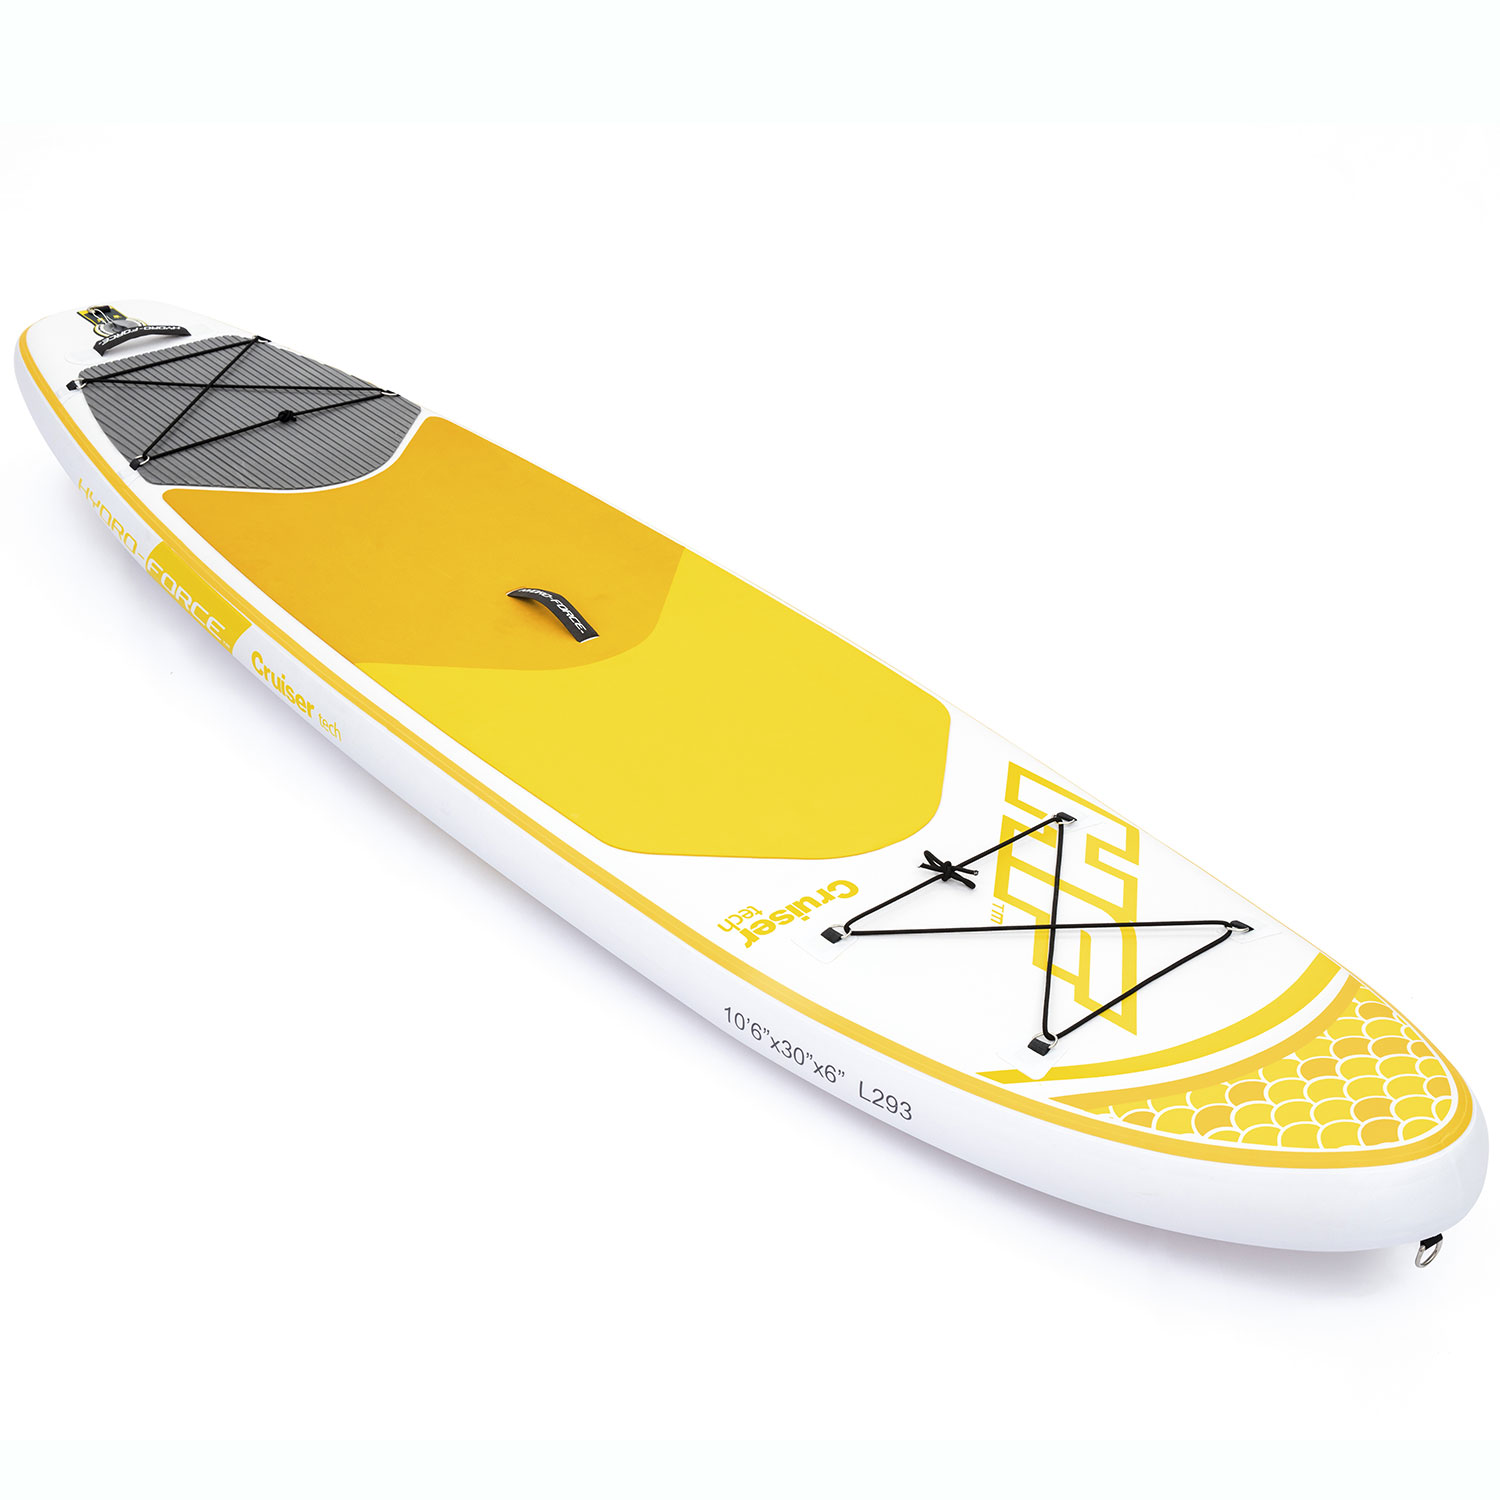 Bestway Hydro Force Inflatable 10 Foot Cruiser Tech SUP Stand Up Paddle Board by Bestway